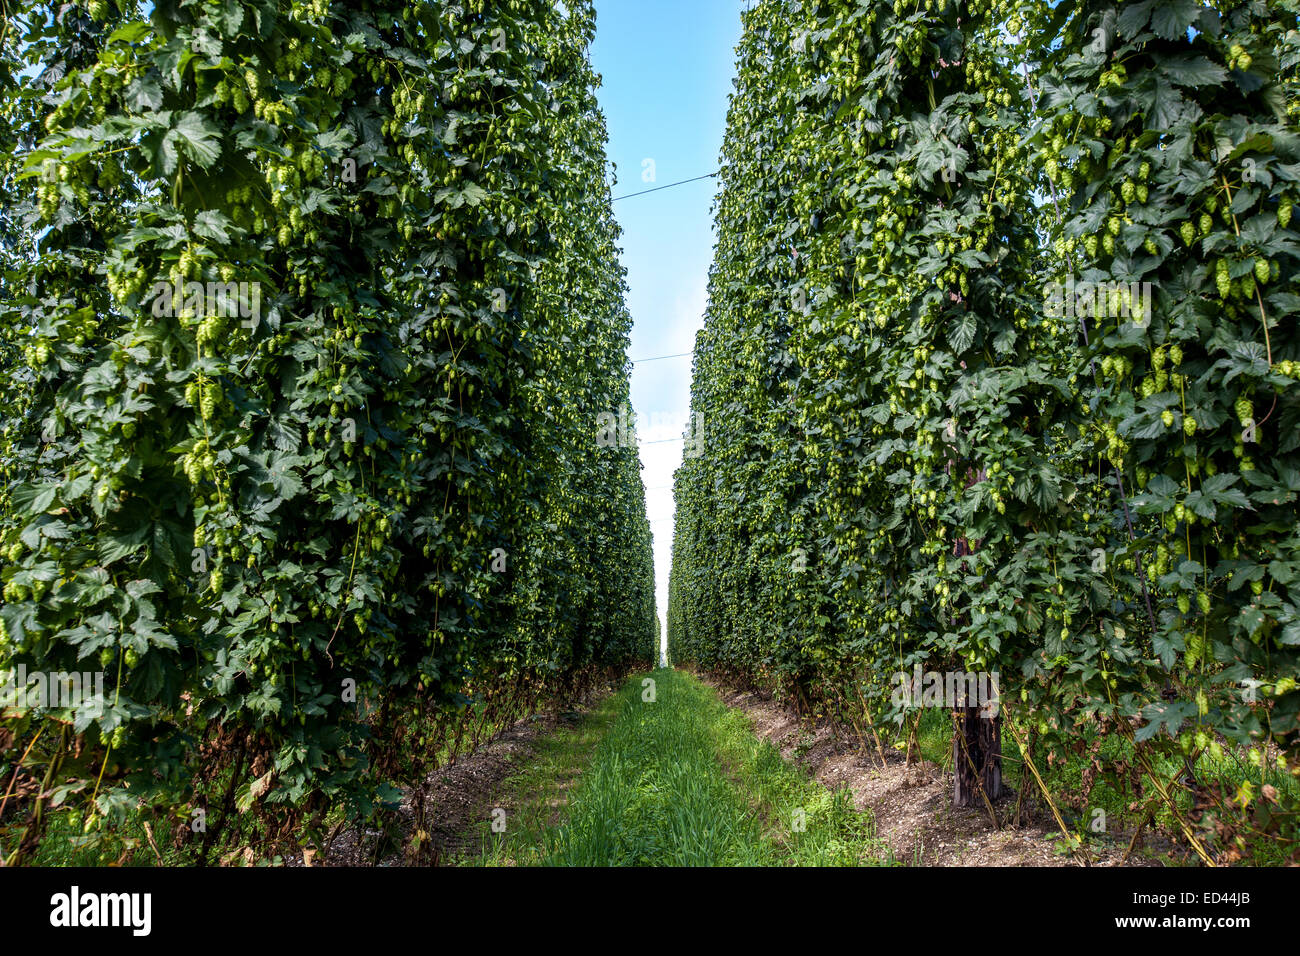 Agricultural field with a ripening hop plants. - Stock Image